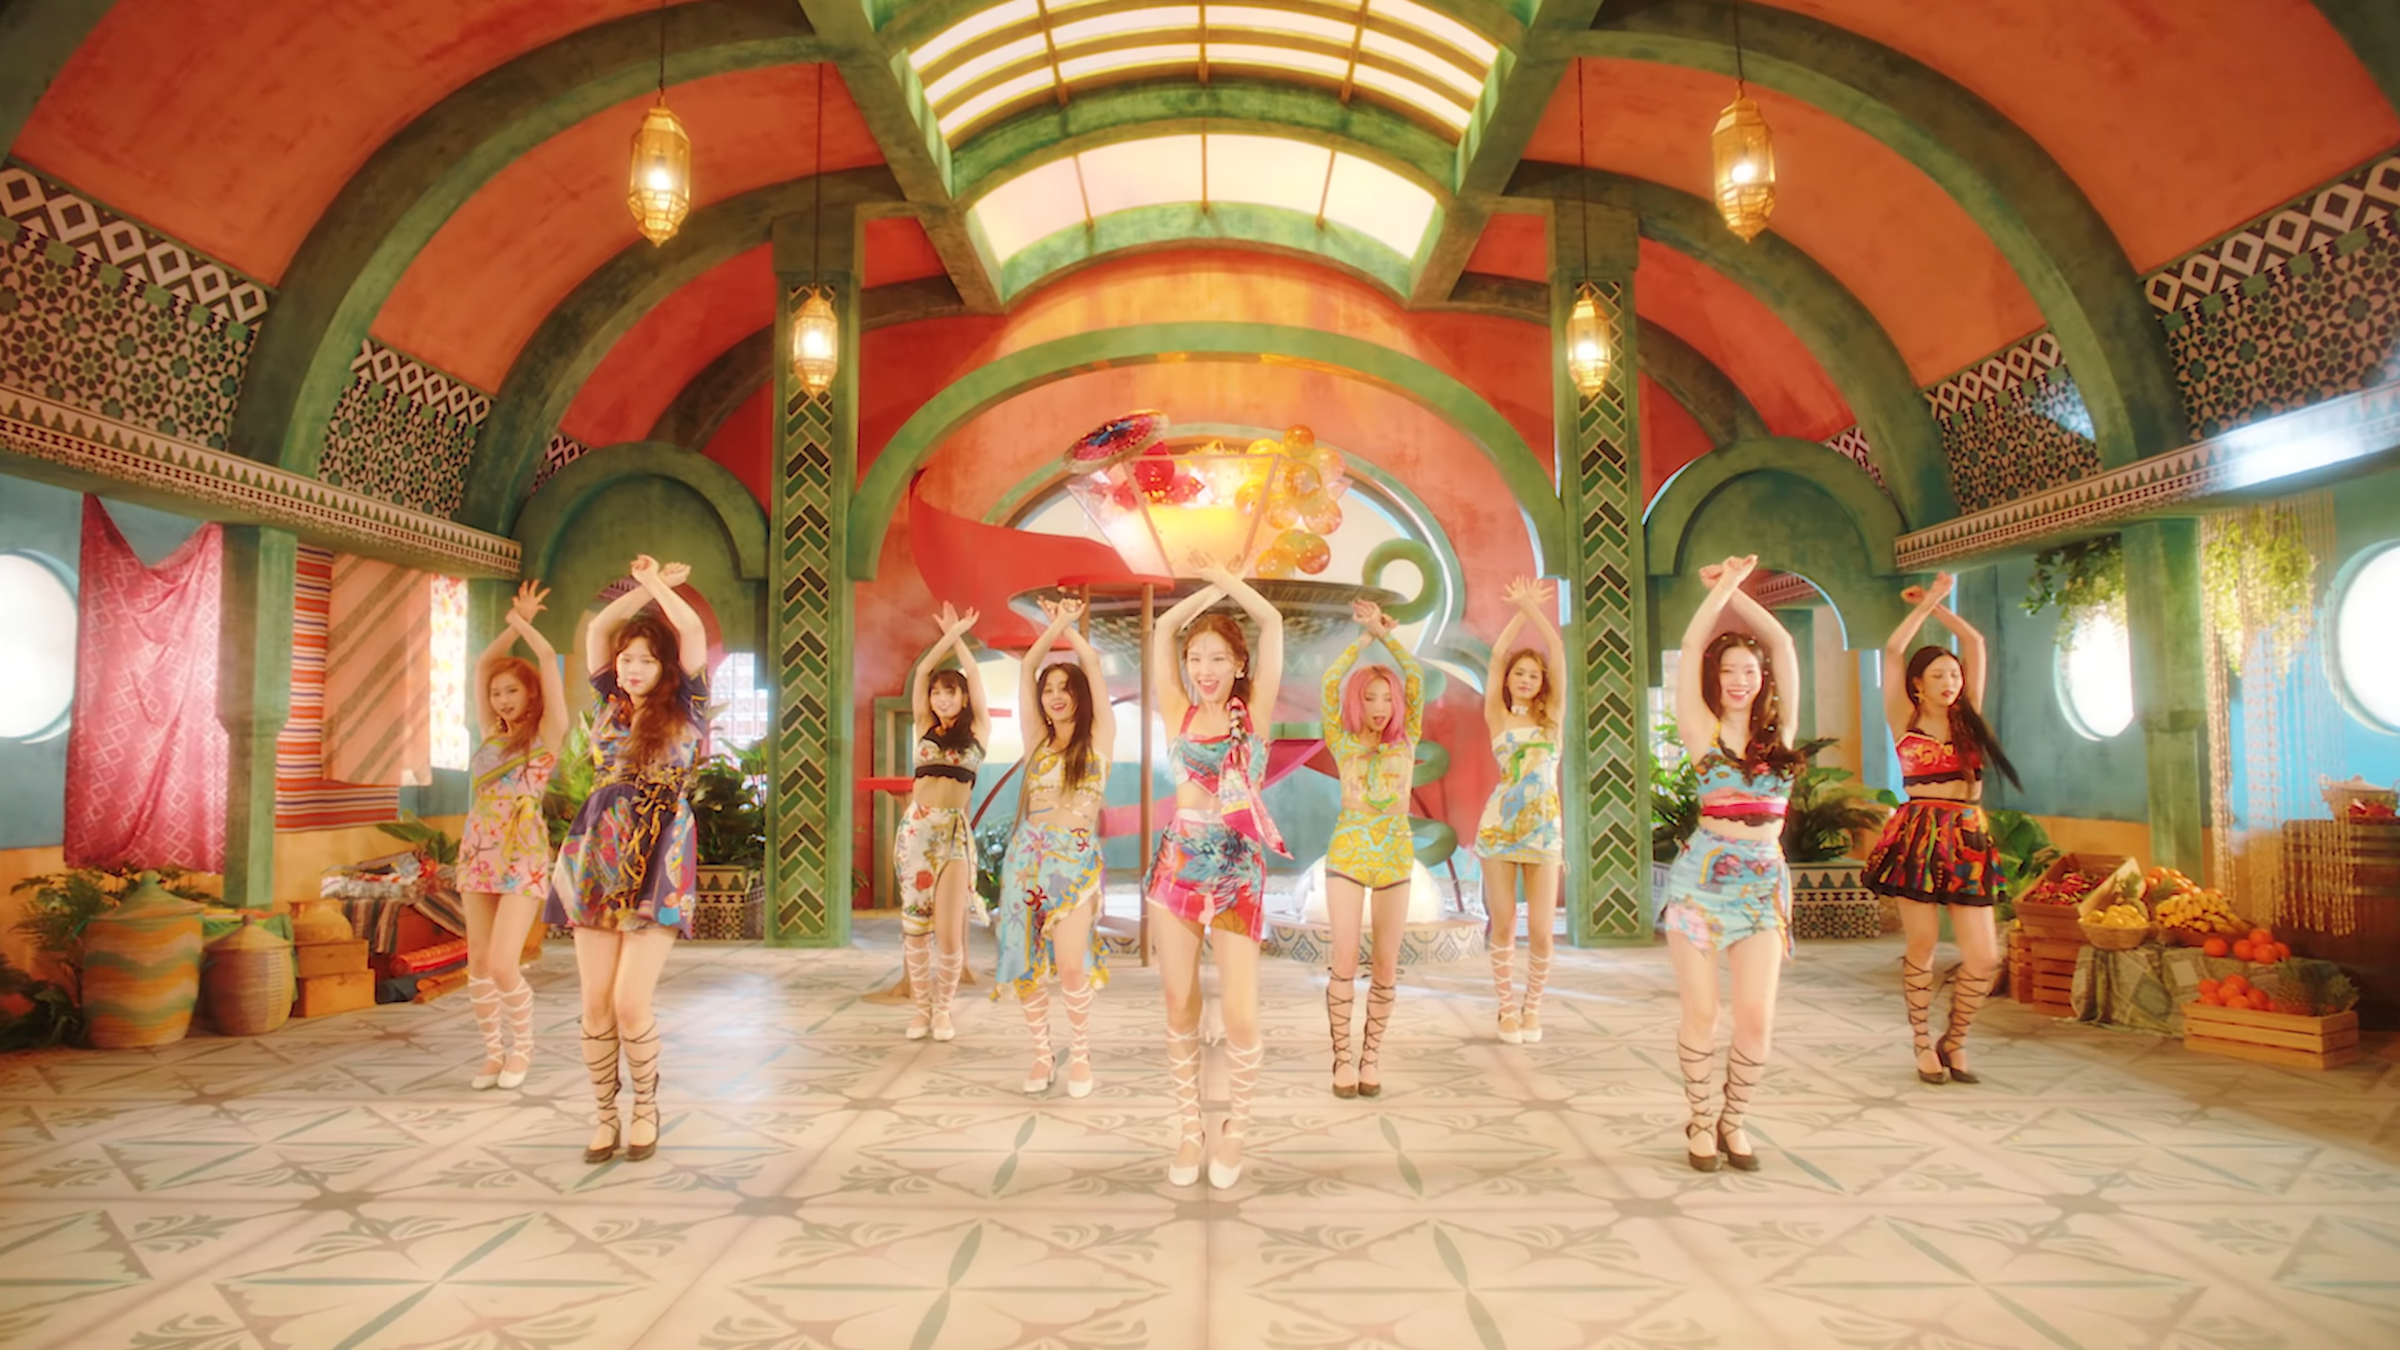 """TWICE members dance to the beat in second MV teaser for """"Alcohol-Free"""" 